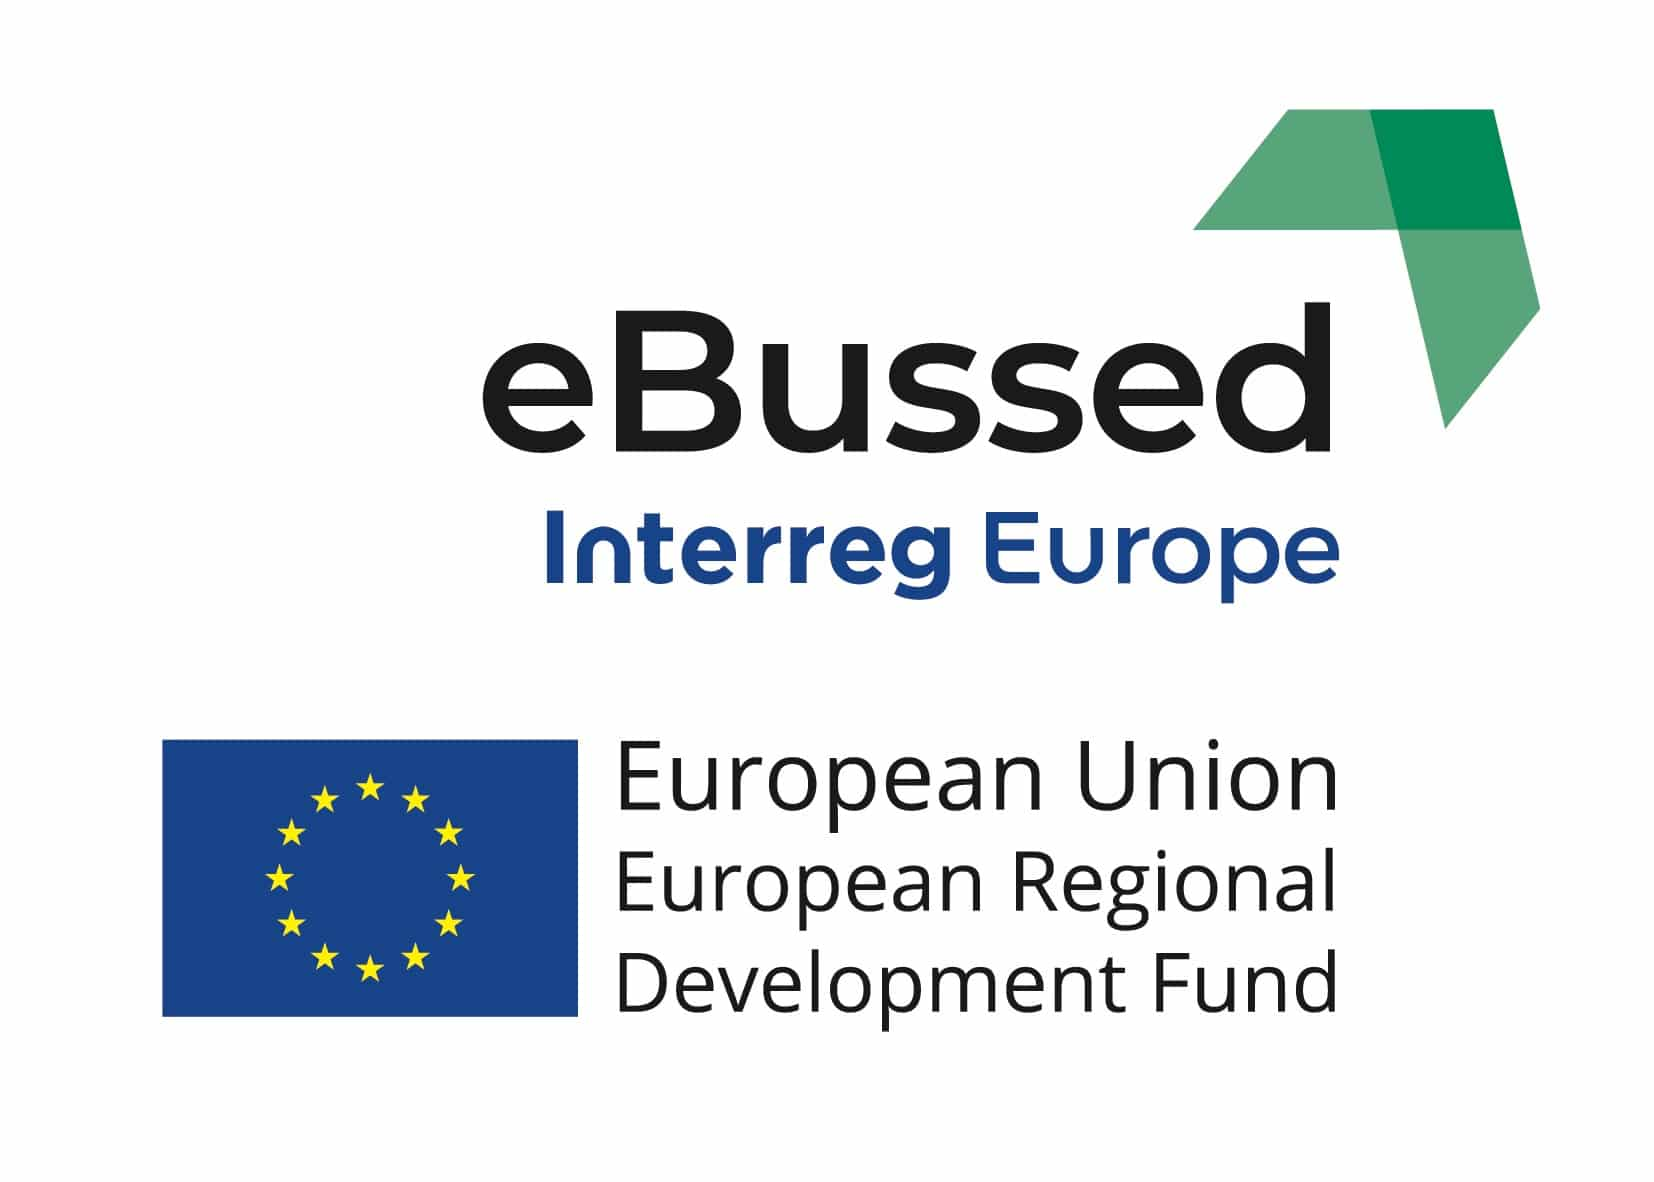 eBussed interreg Europe project